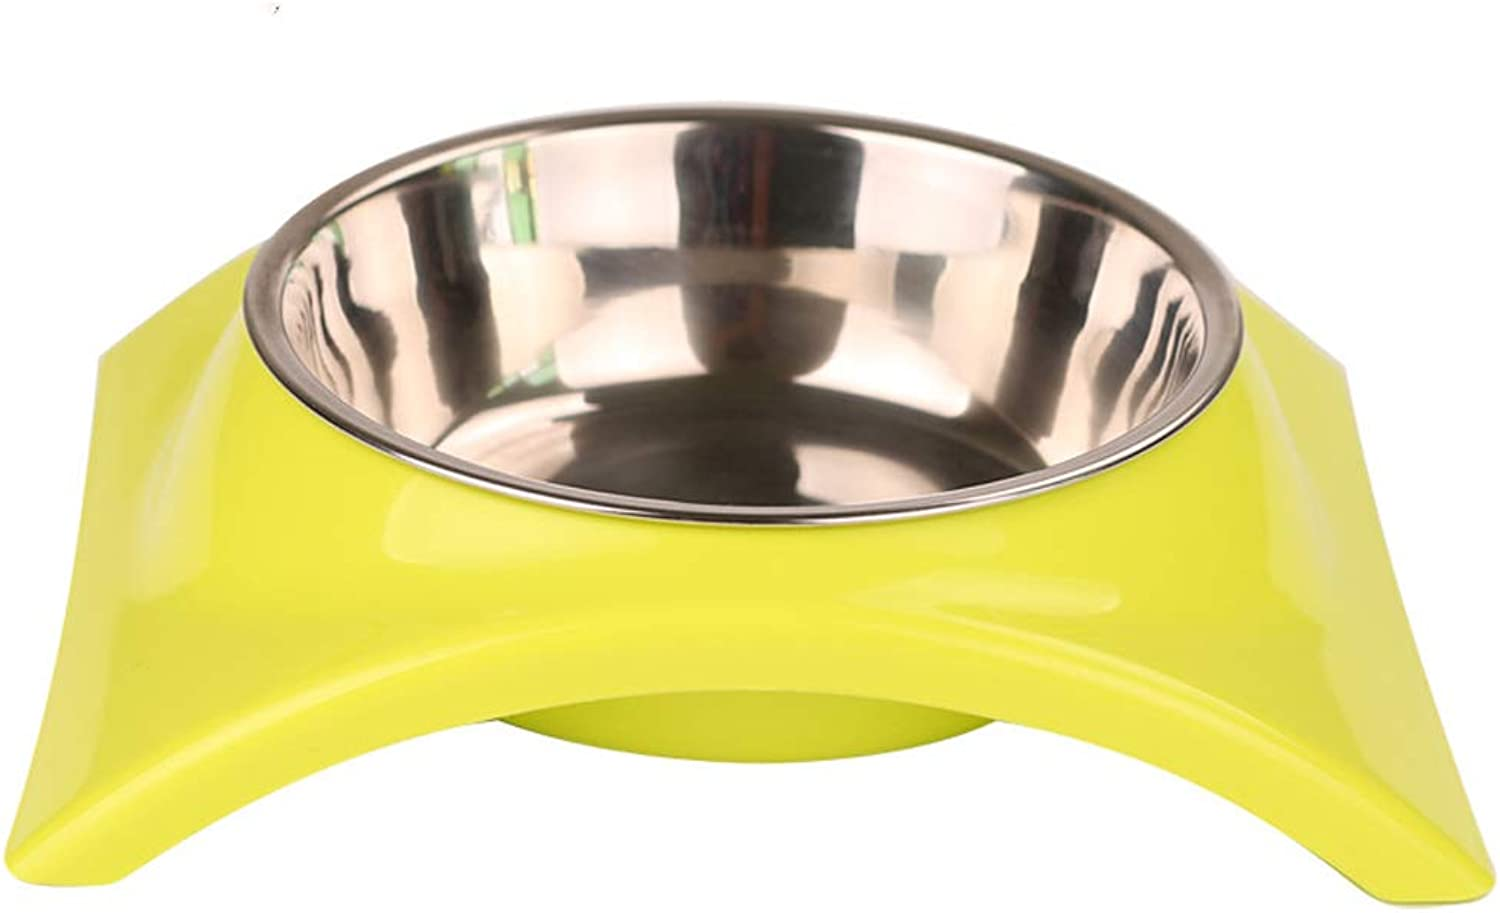 NYDZDM Stainless Steel pet Double Bowl, cat Dog Food Bowl Dog Bowl cat Bowl, pet Supplies Single Bowl Dog Eating Water Dual Purpose (Size   S)